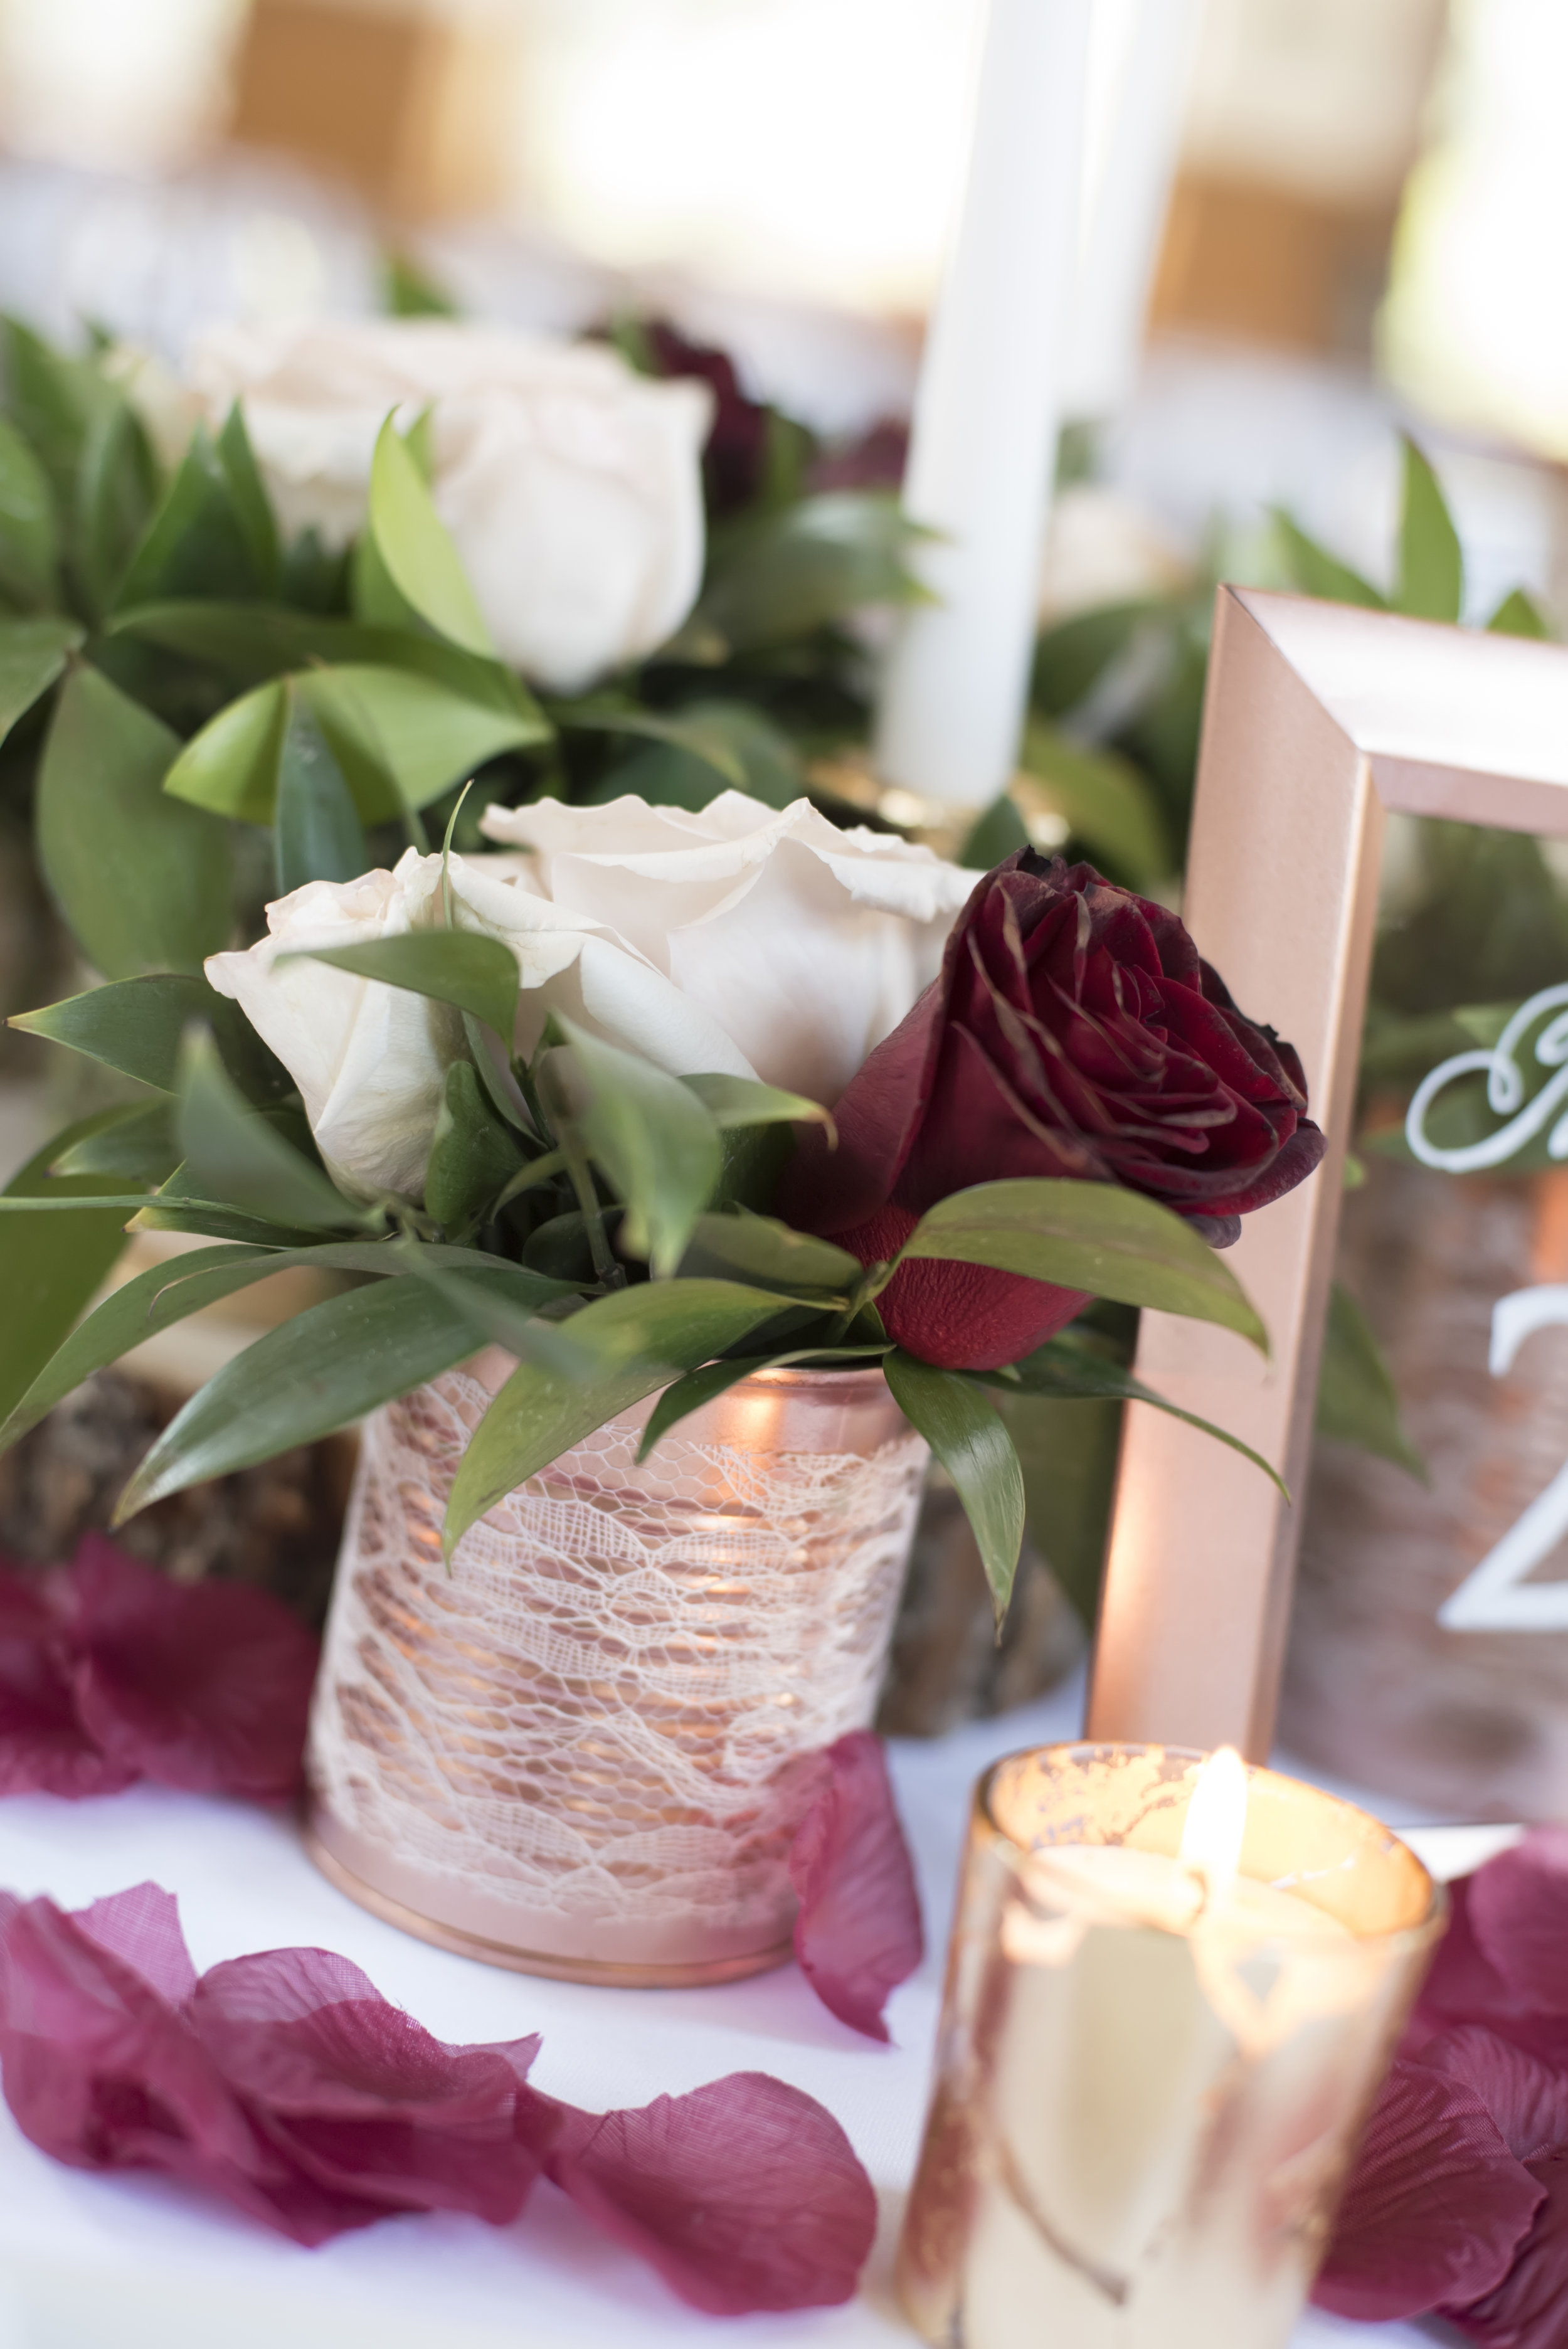 DIY Wedding Centerpiece on a Budget | Made with Tin Cans